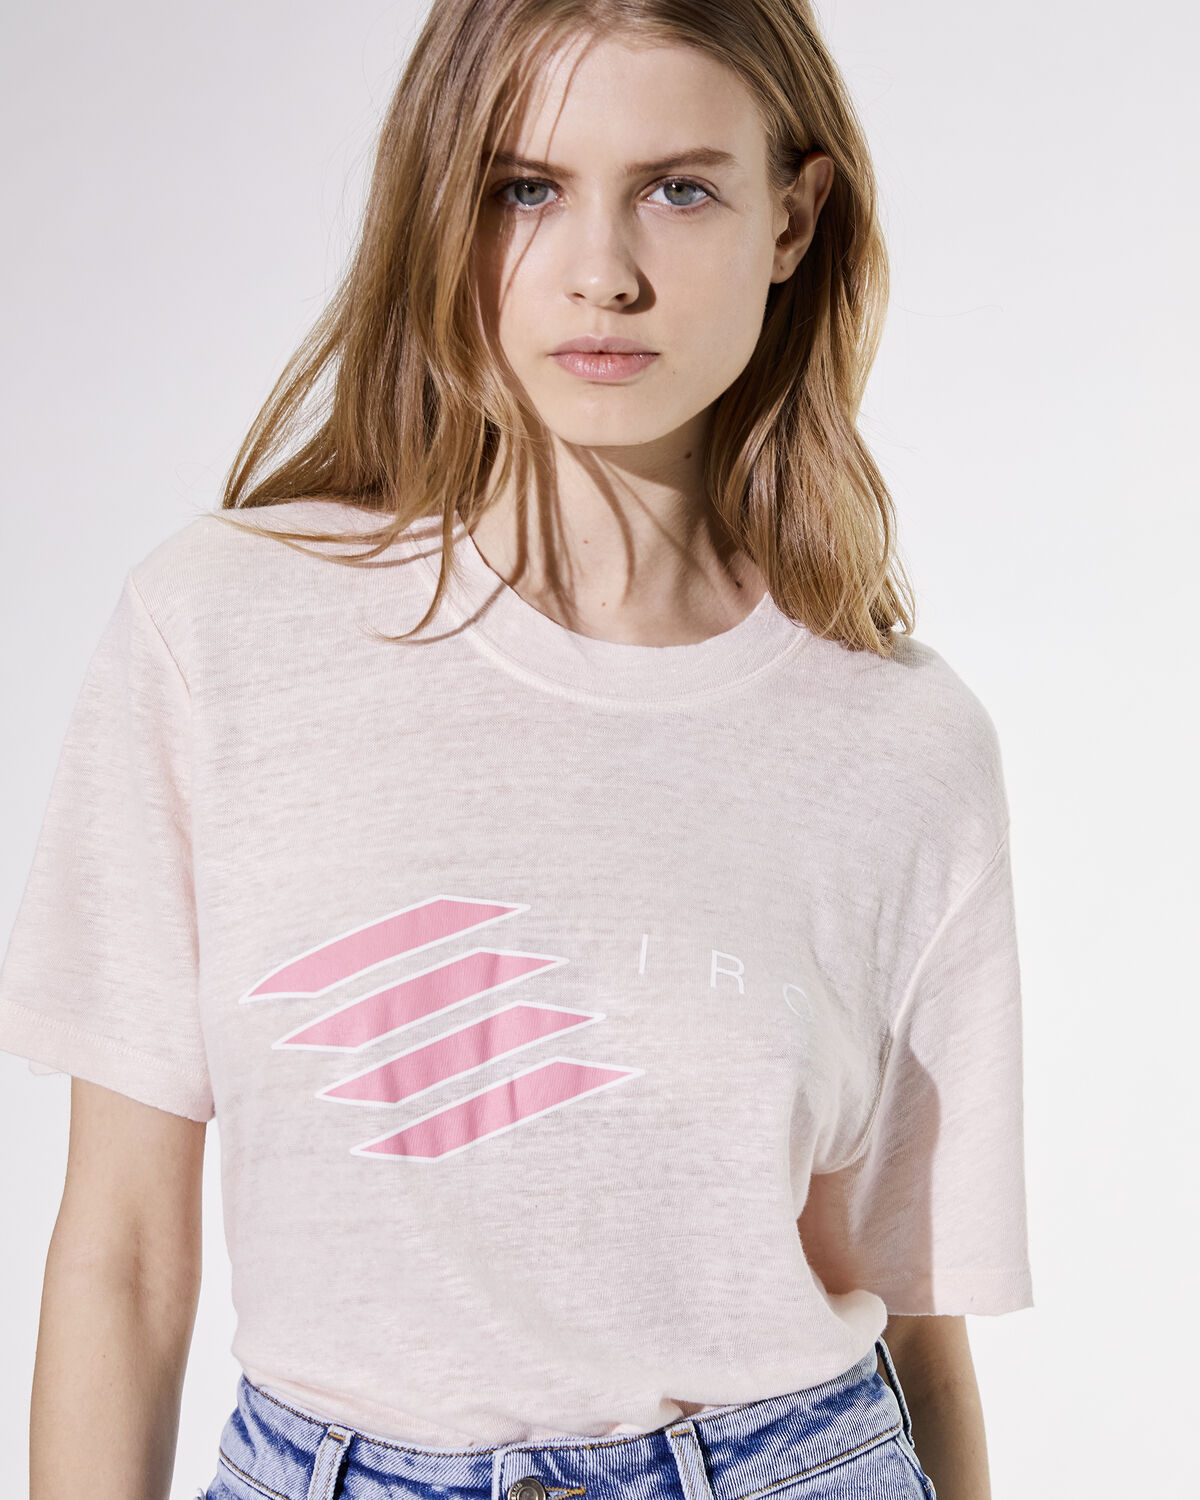 Lucie T-Shirt Cream Pearl And Pink by IRO Paris